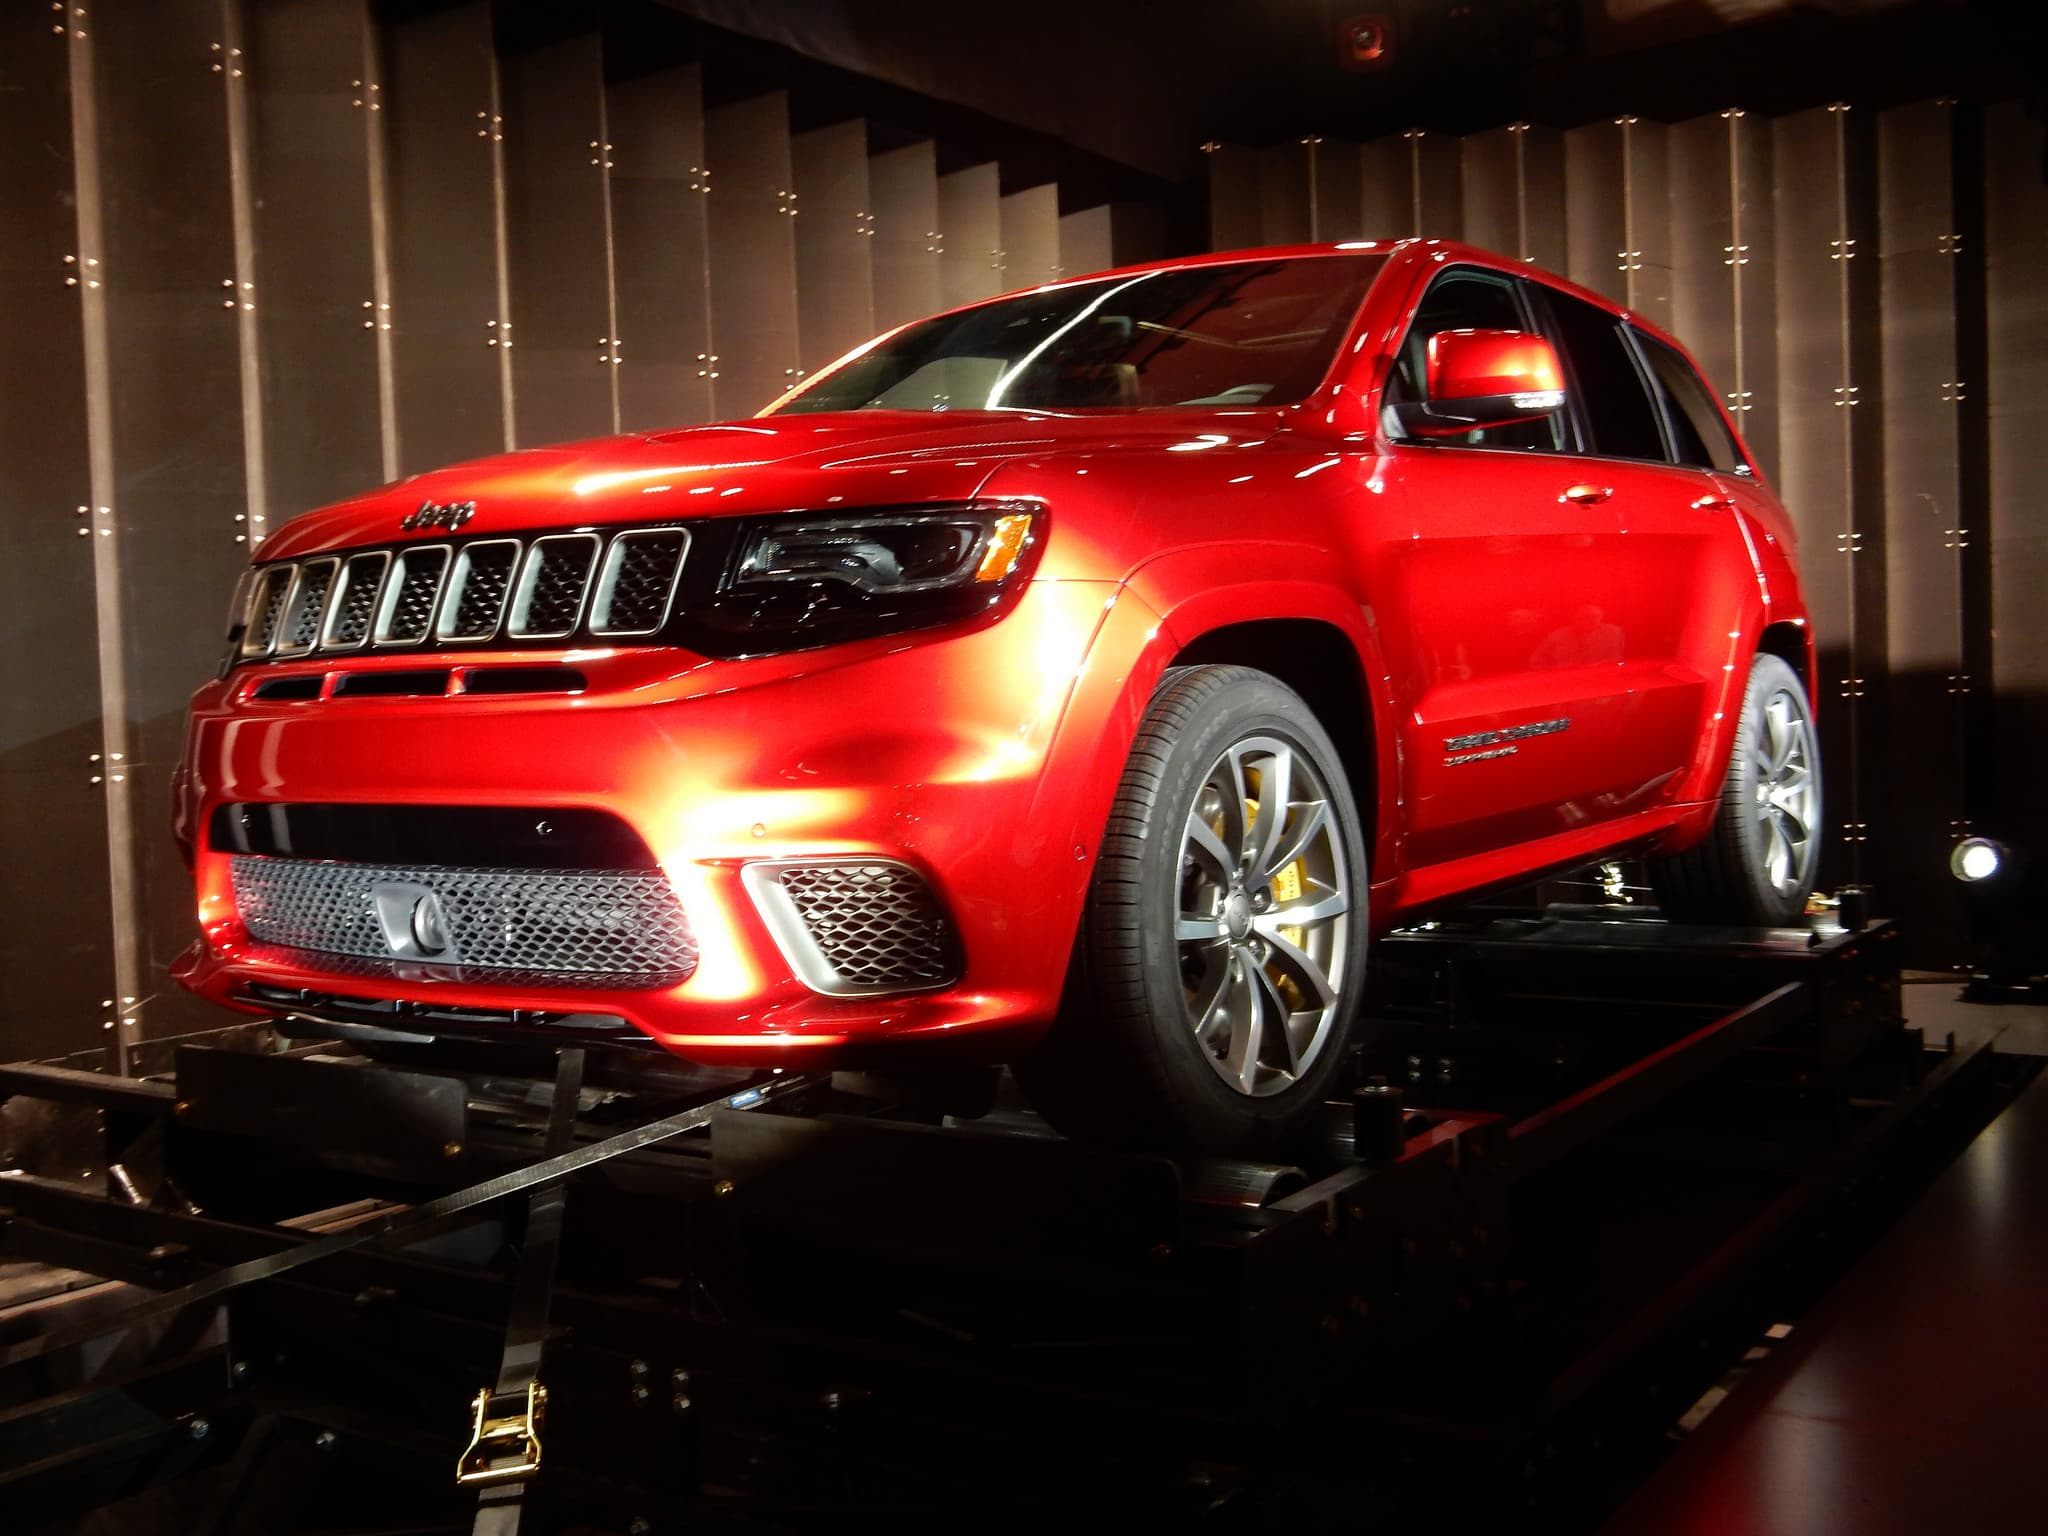 2018 jeep grand cherokee trackhawk wallpapers hd. Black Bedroom Furniture Sets. Home Design Ideas